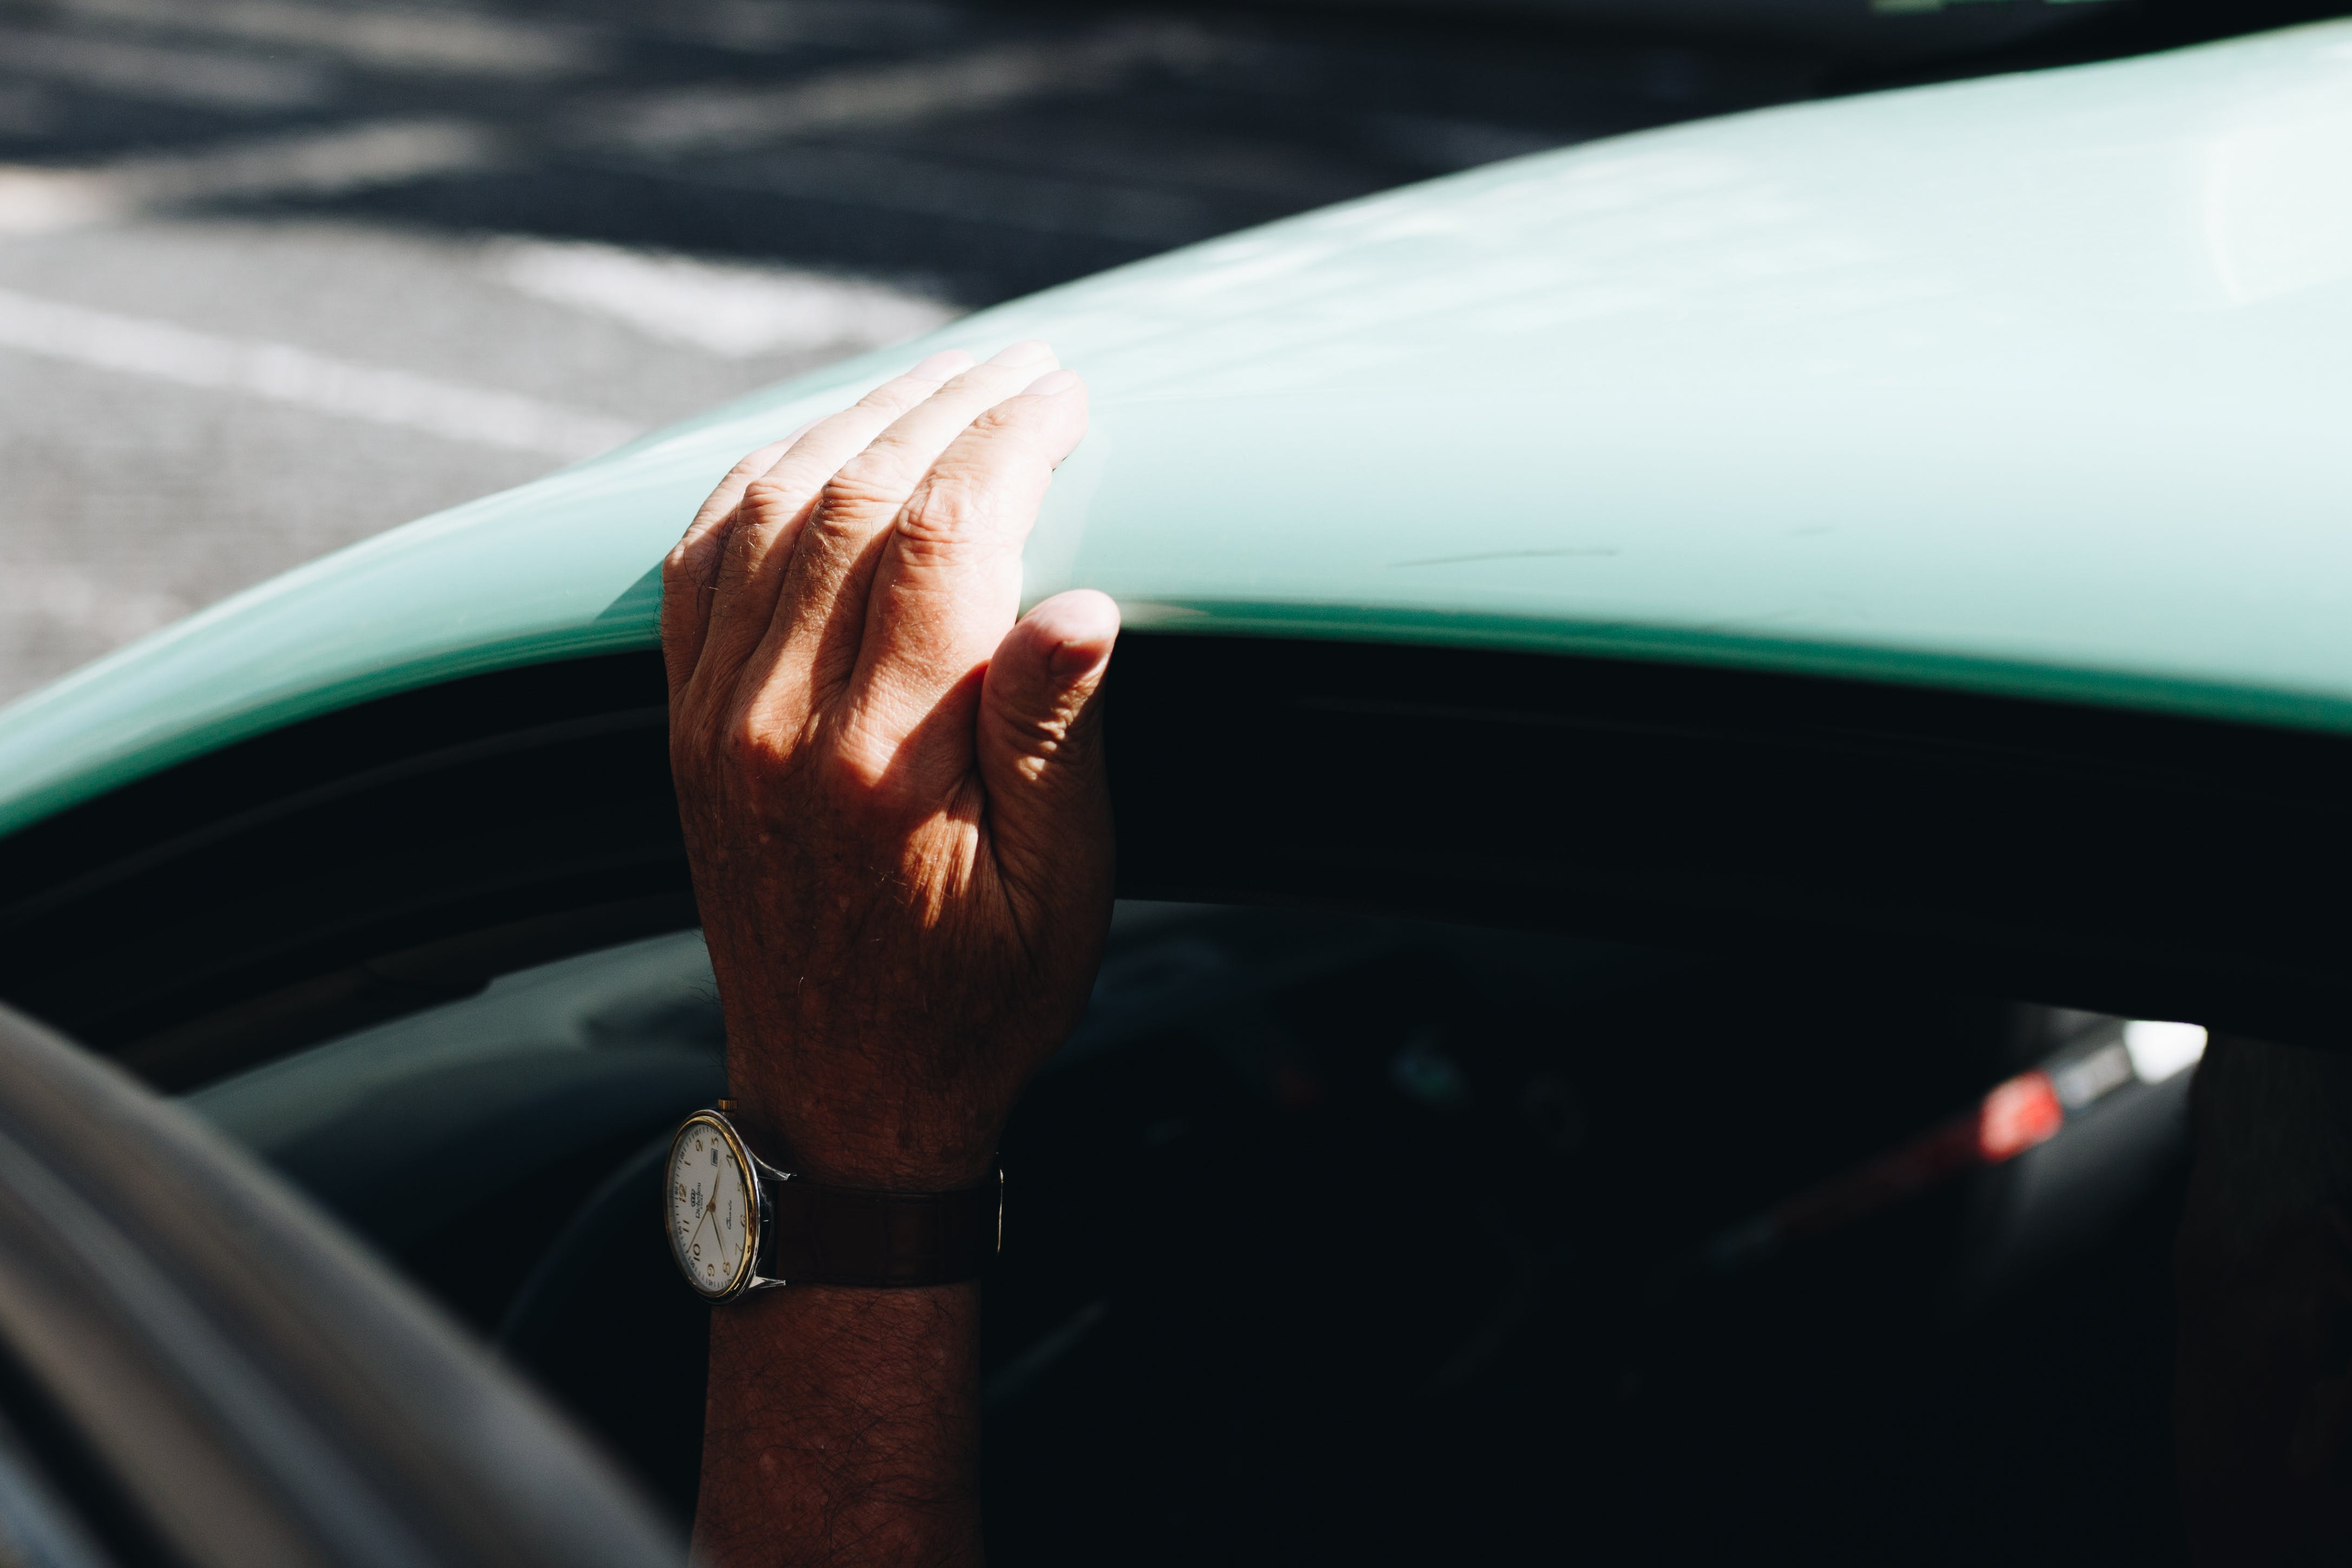 Person Wearing Round White Analog Watch Black Strap Holding on Vehicle Roof